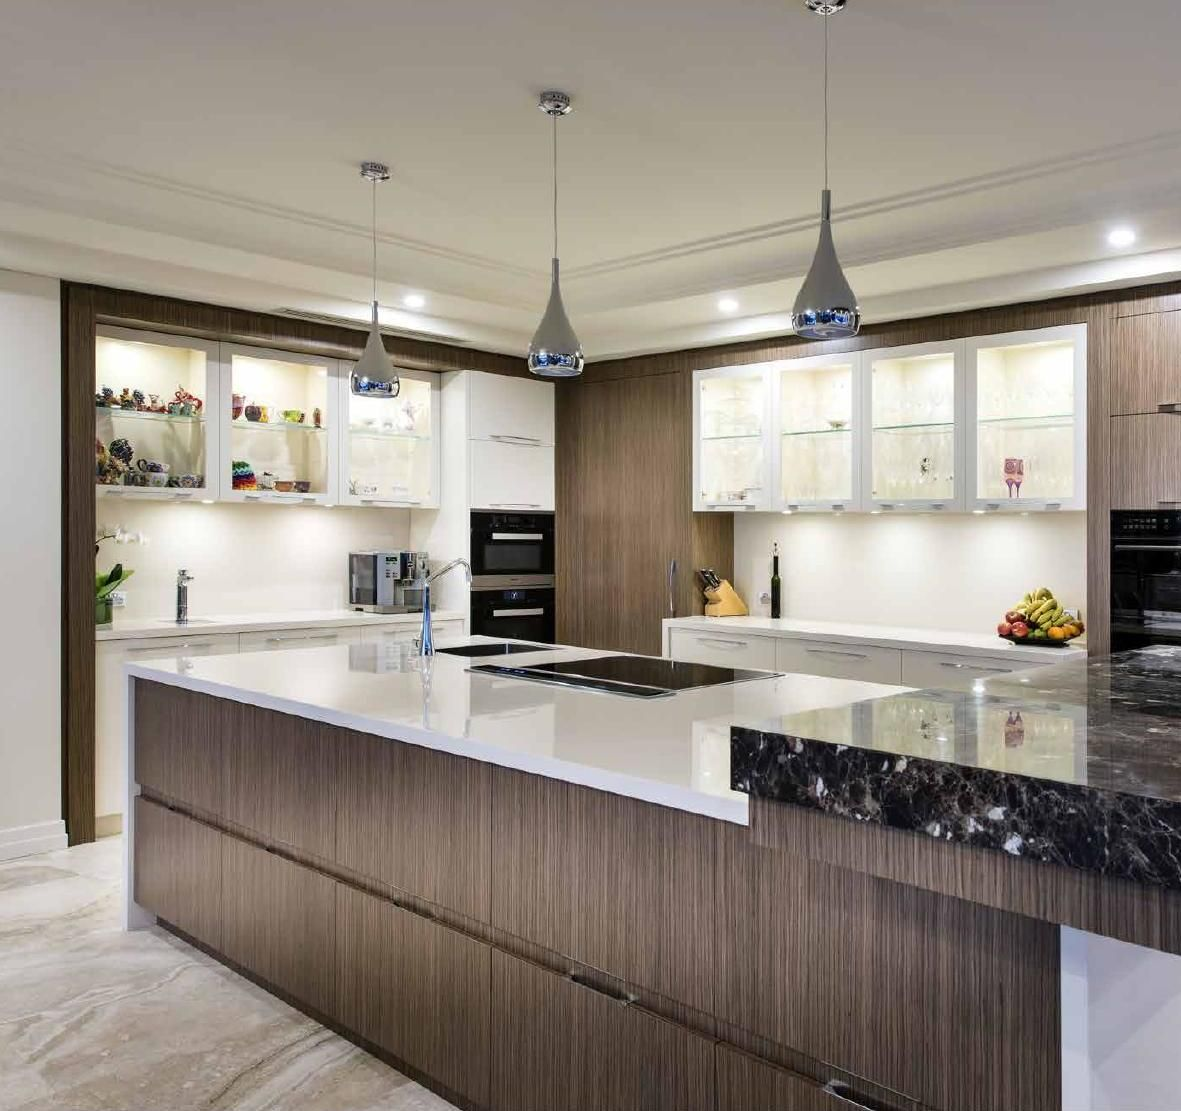 WA Custom Homes 2015 | Cocinas